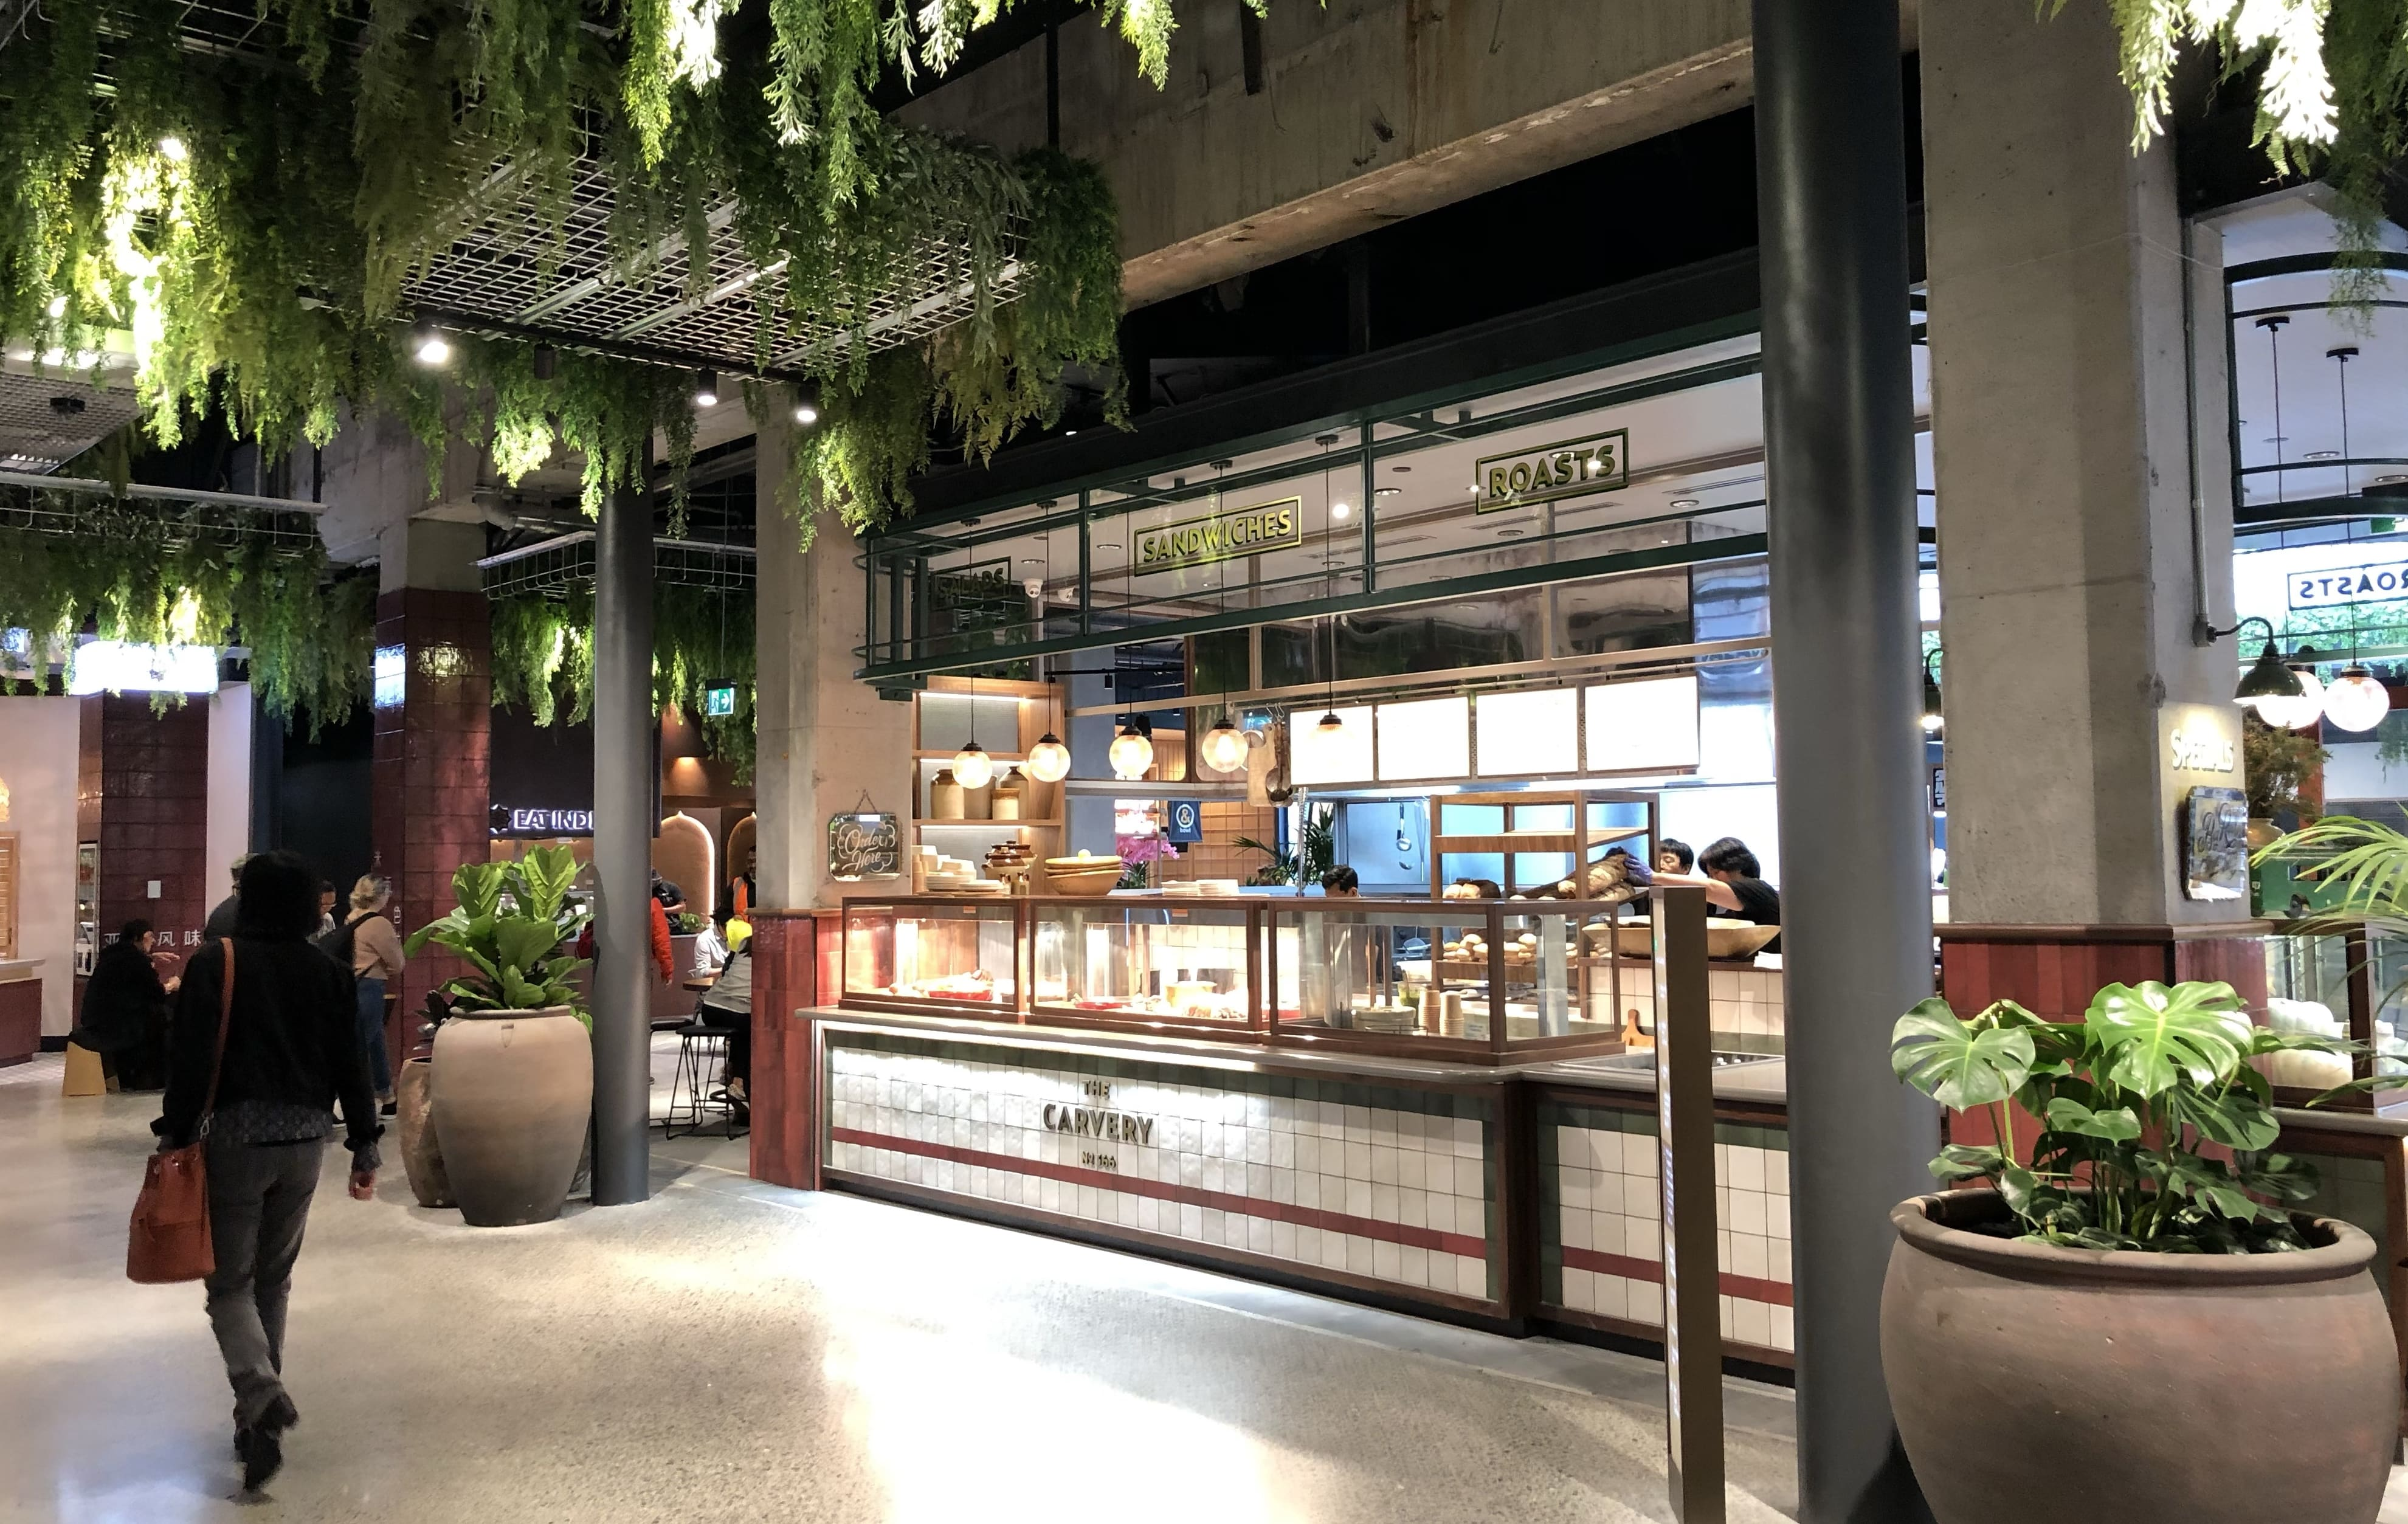 The new Westfield Newmarket, which opened in early October, has set a new standard in food and hospitality for New Zealand with its suite of modern cafes, food stores, The Eatery Food Hall and the amazing Rooftop On Broadway.